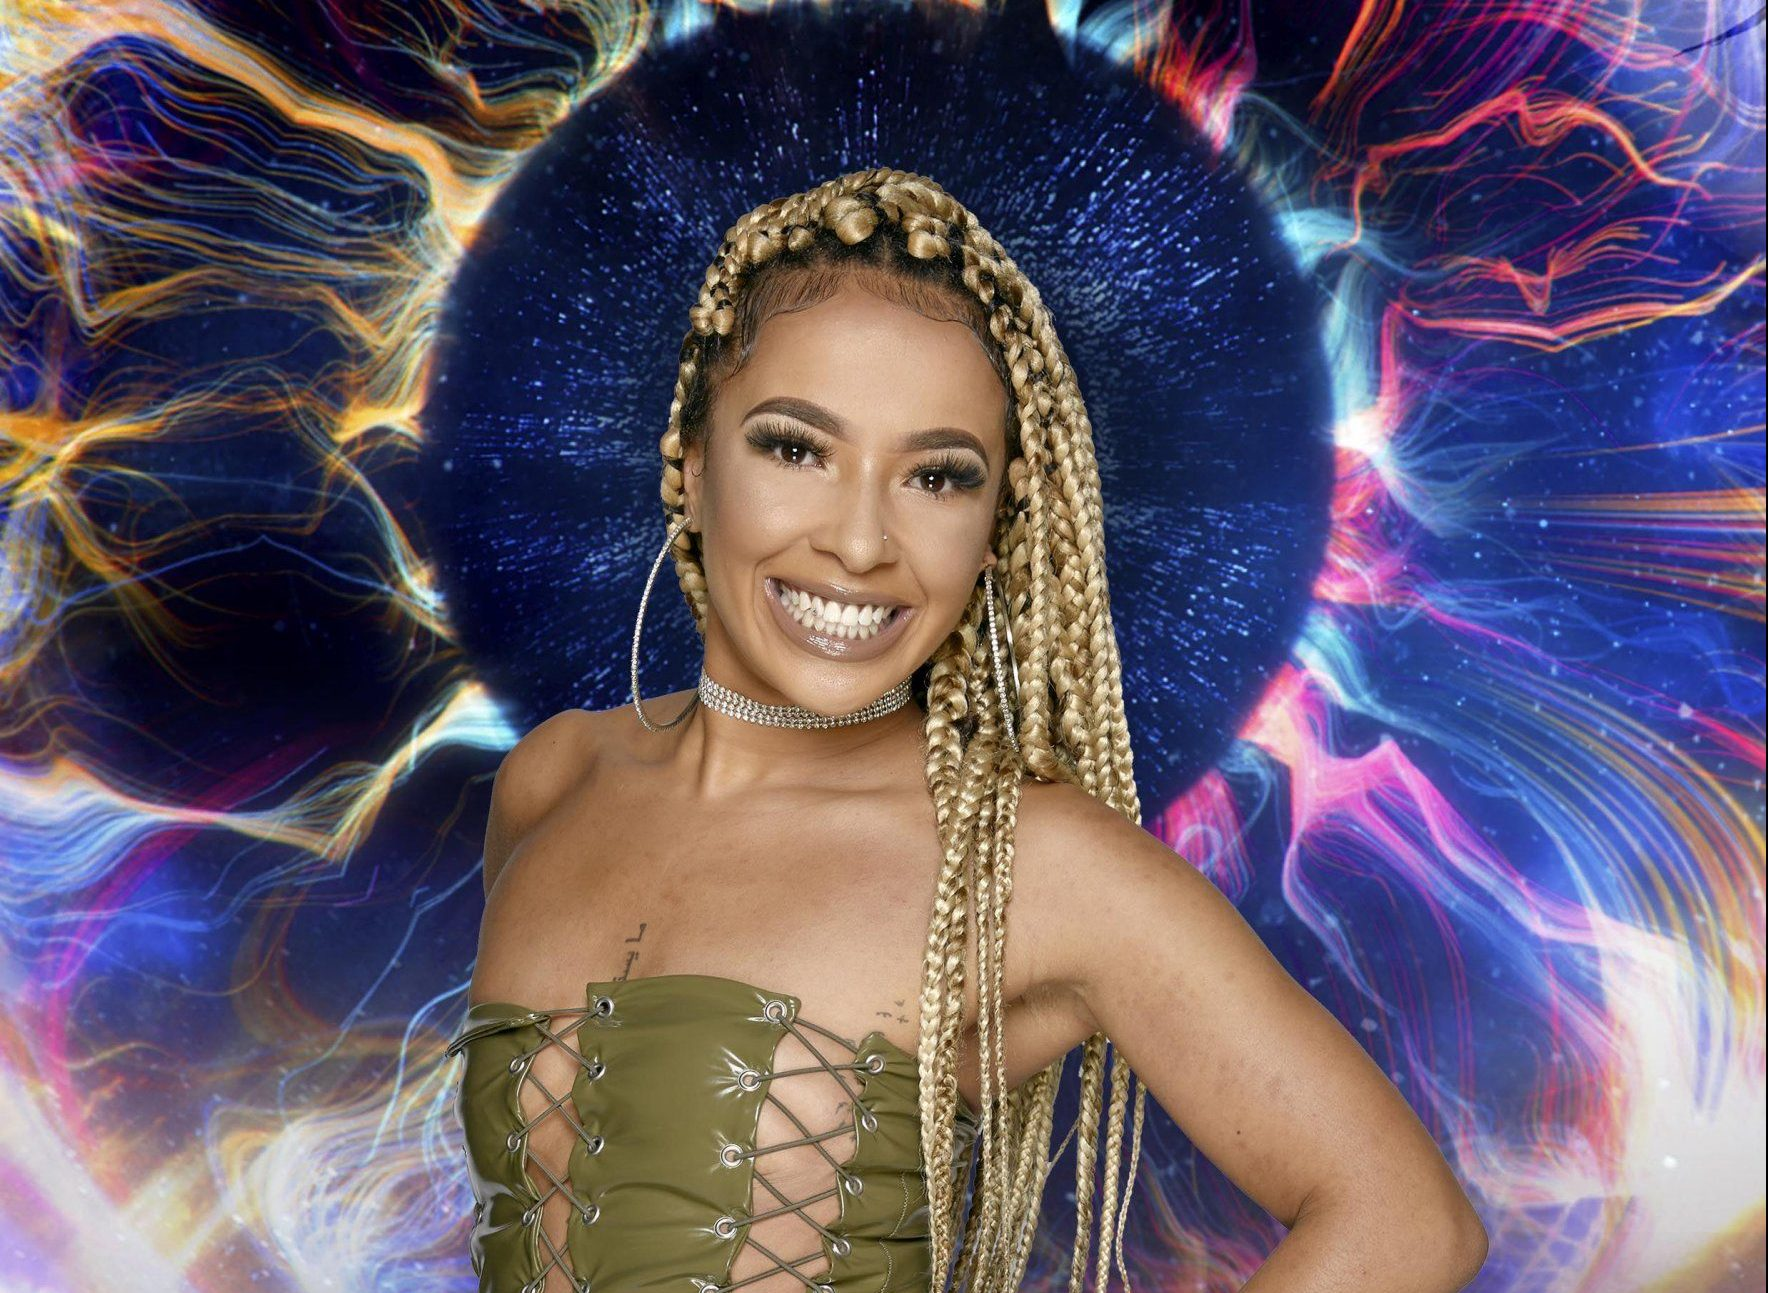 Big Brother star felt pressured by white beauty standards as she dreamed of becoming first female black winner